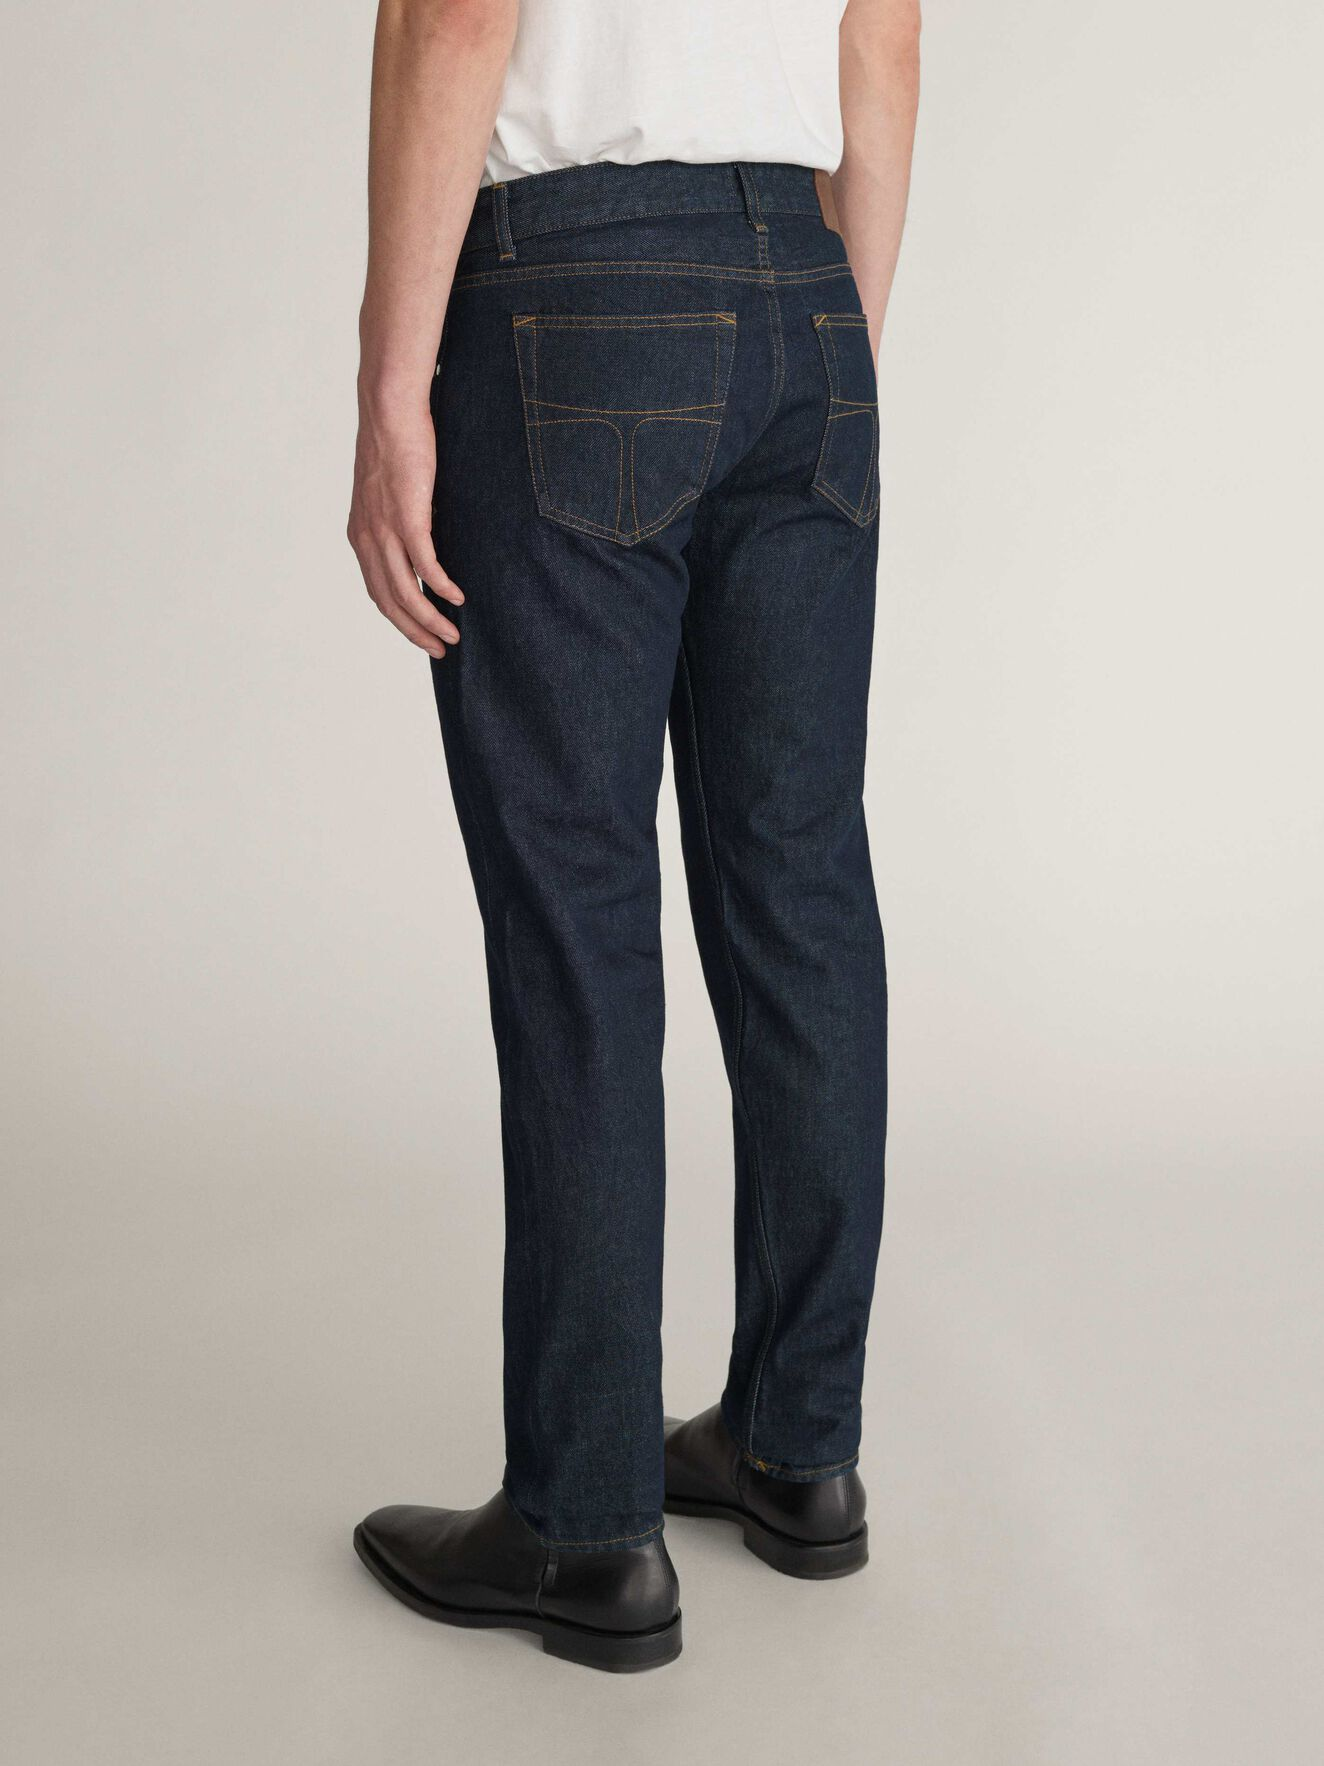 Alex Jeans in Midnight blue from Tiger of Sweden